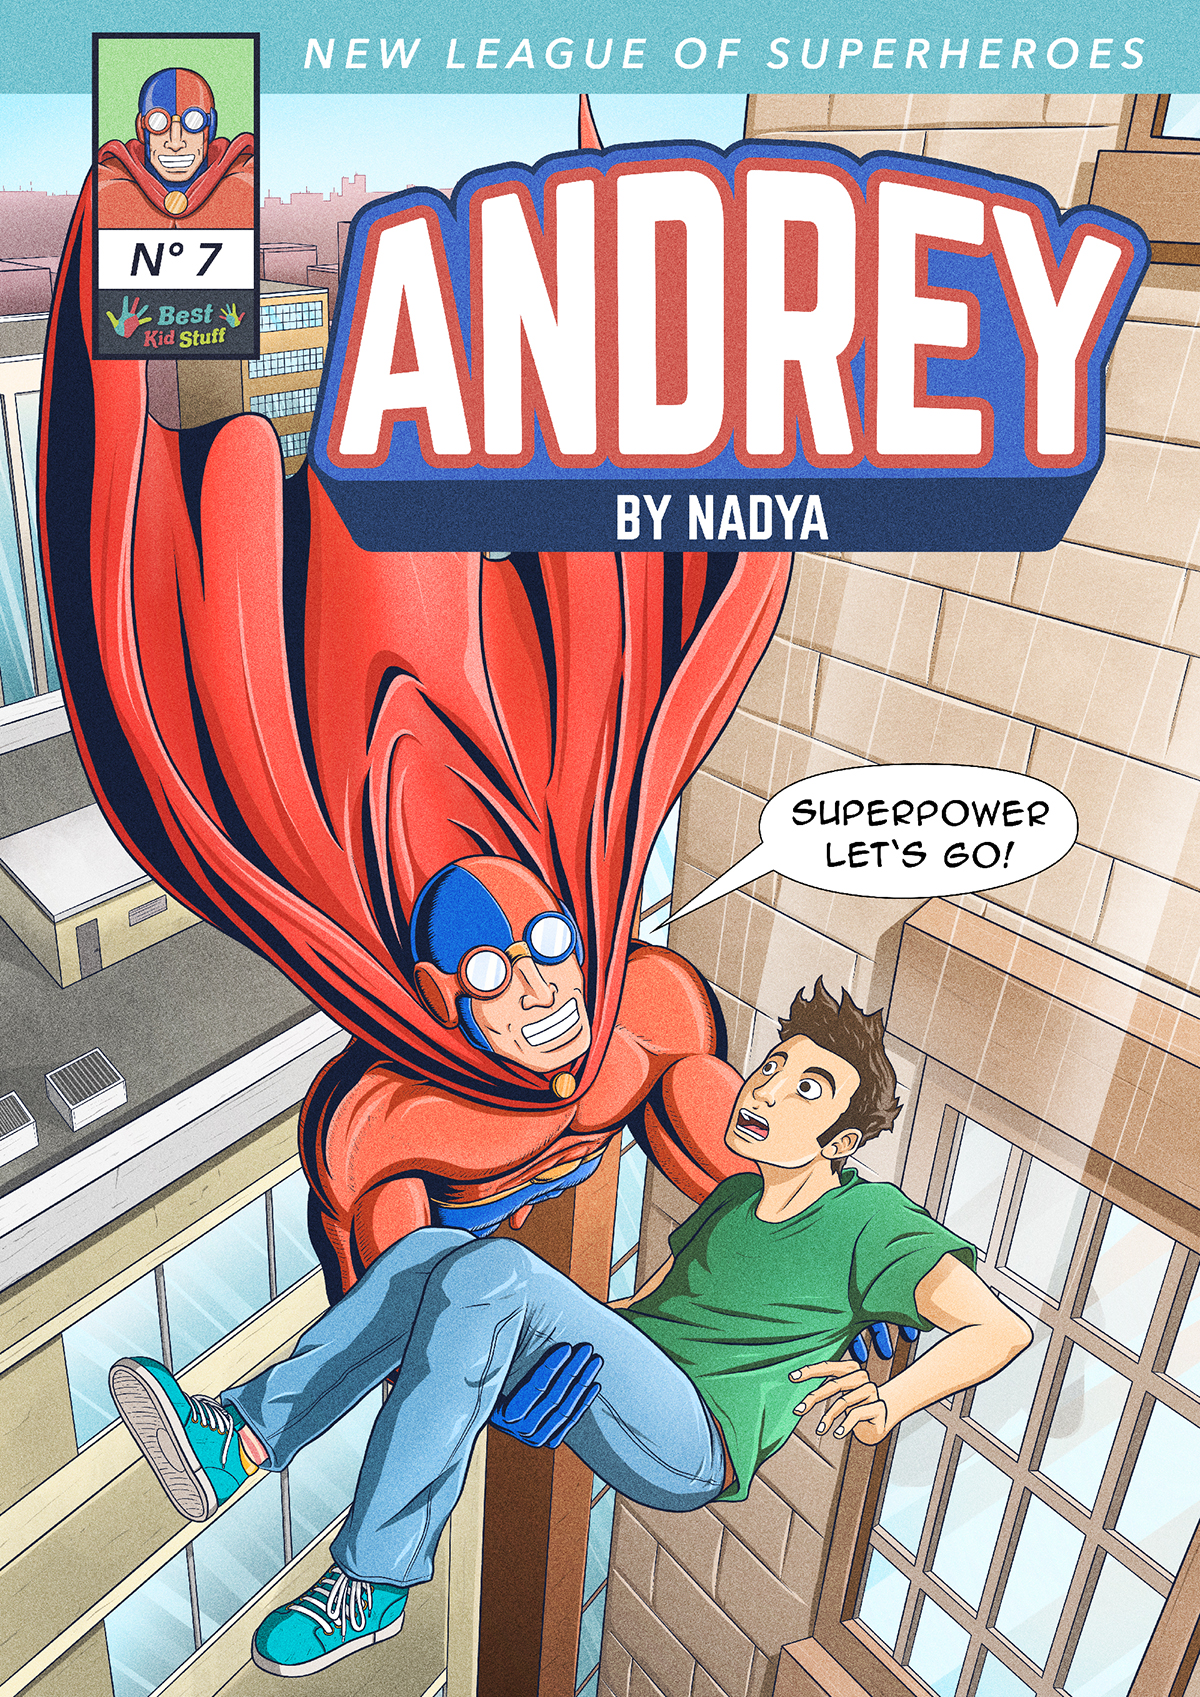 07 New League of Superheroes Andrey